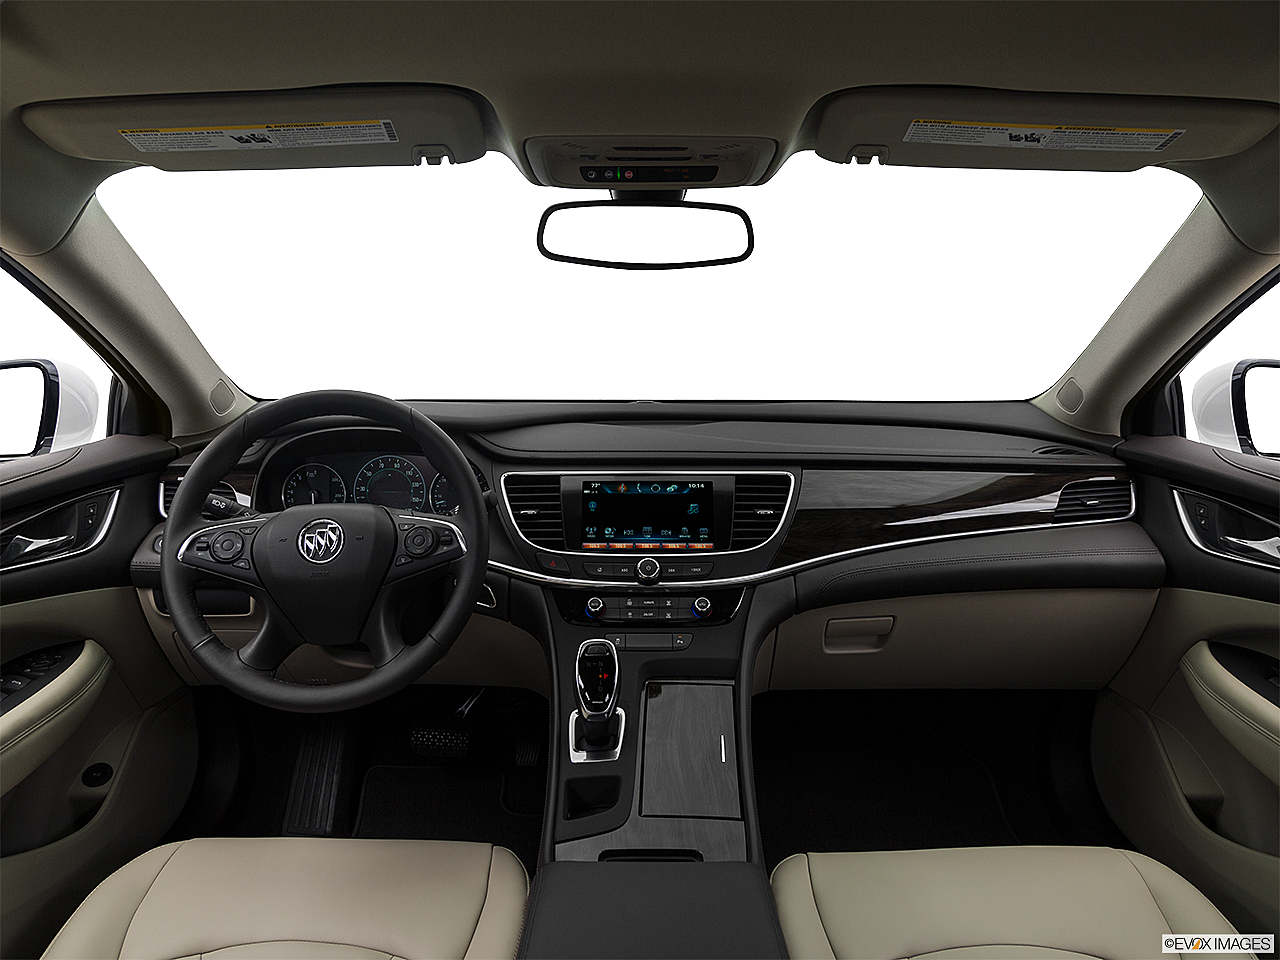 2019 Buick LaCrosse Preferred, centered wide dash shot